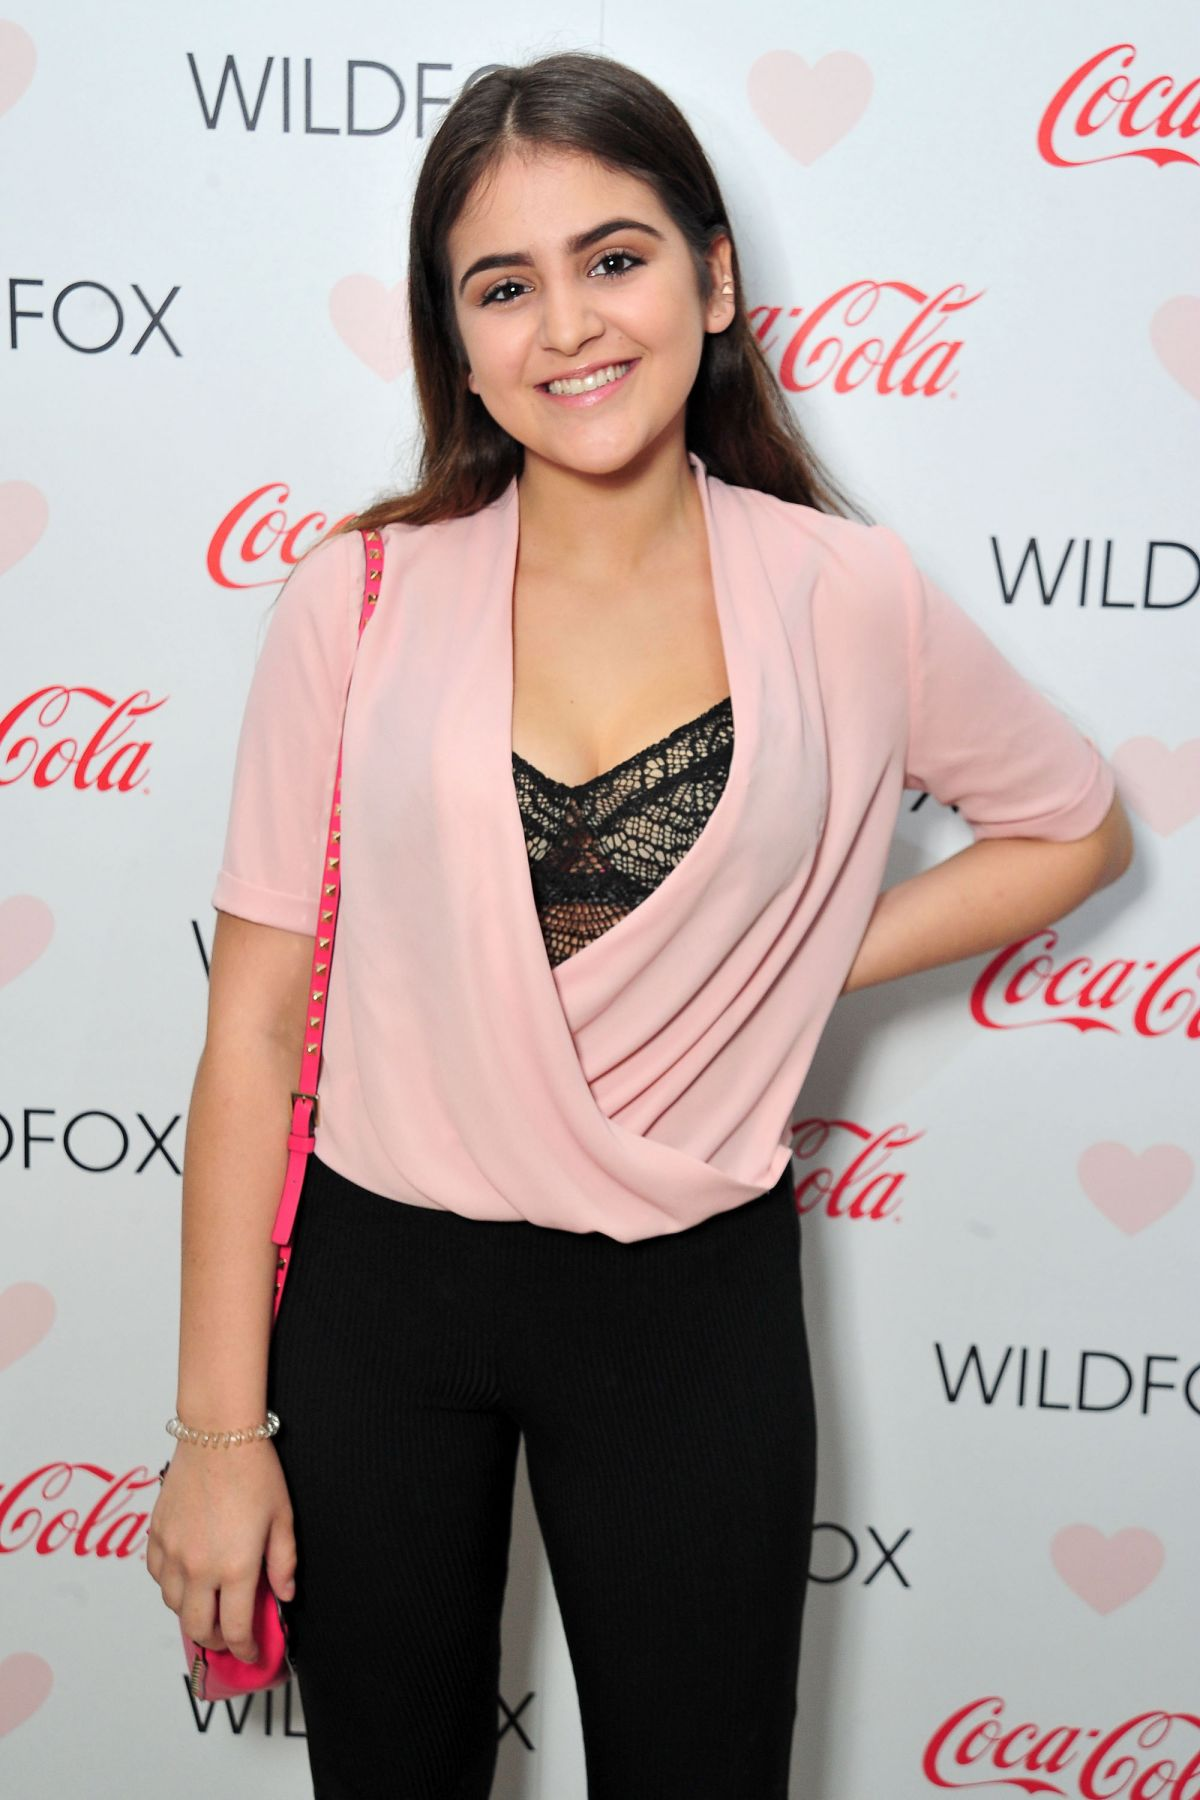 LAUREN GIRALDO at Wildfox Loves Coca-cola Capsule Collection Launch Party in West Hollywood 10/22/2015